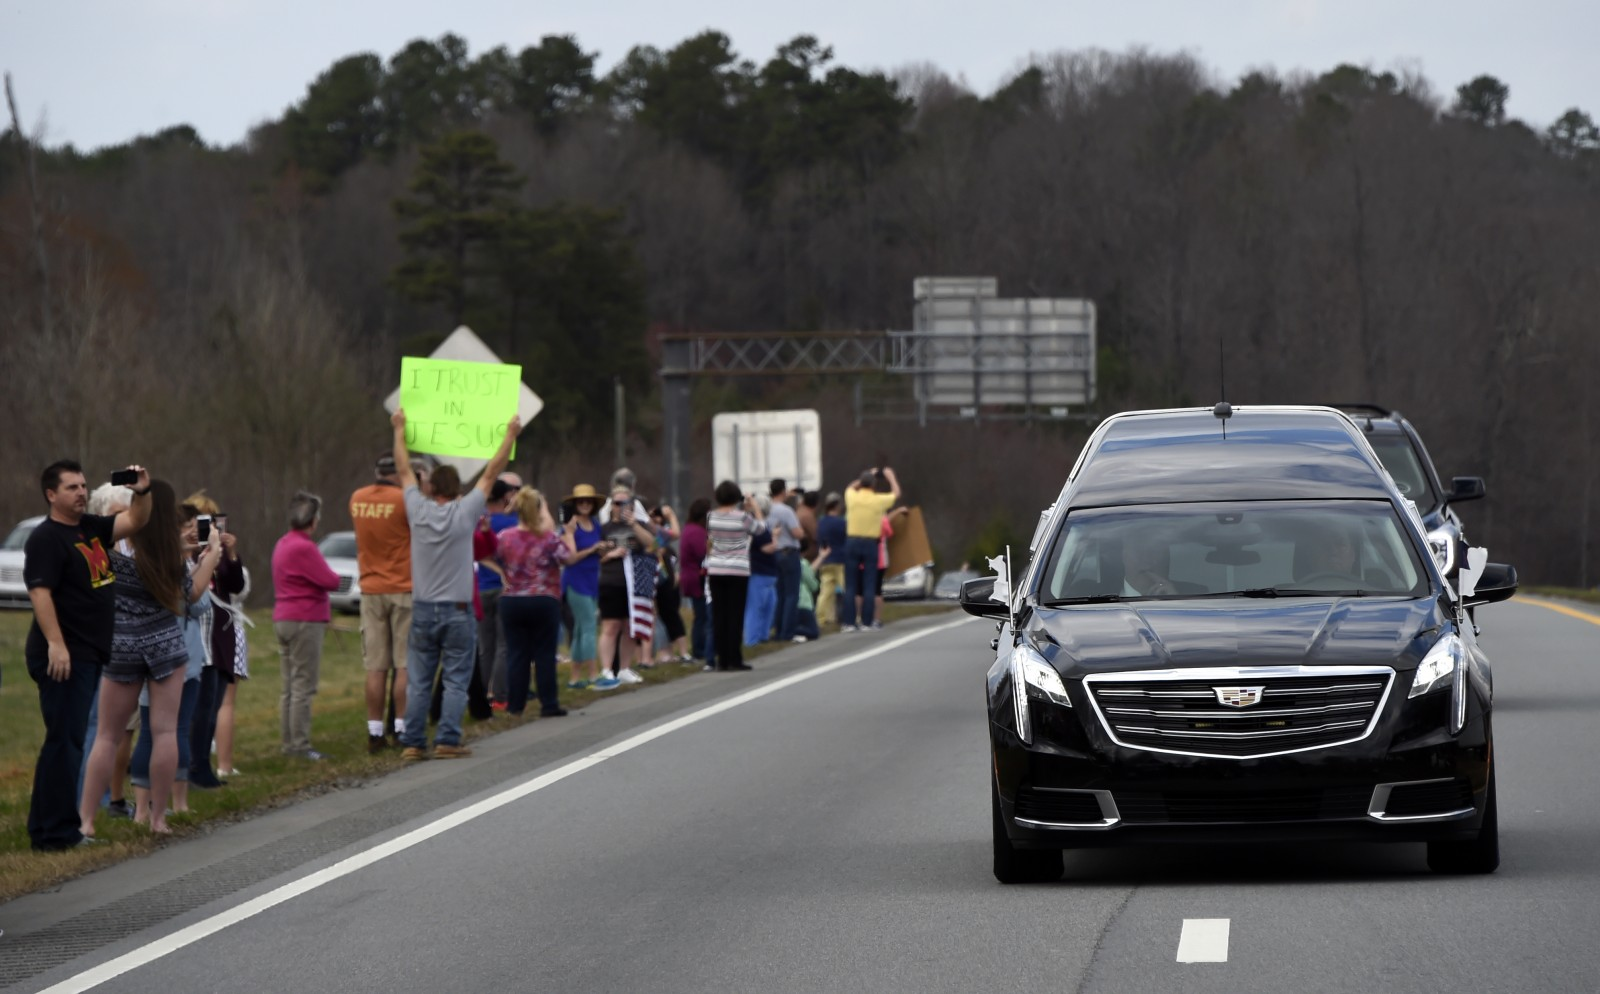 People watch as the hearse carrying the body of Billy Graham leaves Hickory, N.C., as it drives toward the Billy Graham Library Saturday, Feb. 24, 2018. Graham's body was brought to his hometown of Charlotte on Saturday, Feb. 24, as part of a procession expected to draw crowds of well-wishers. (Kathy Kmonicek/pool photo)